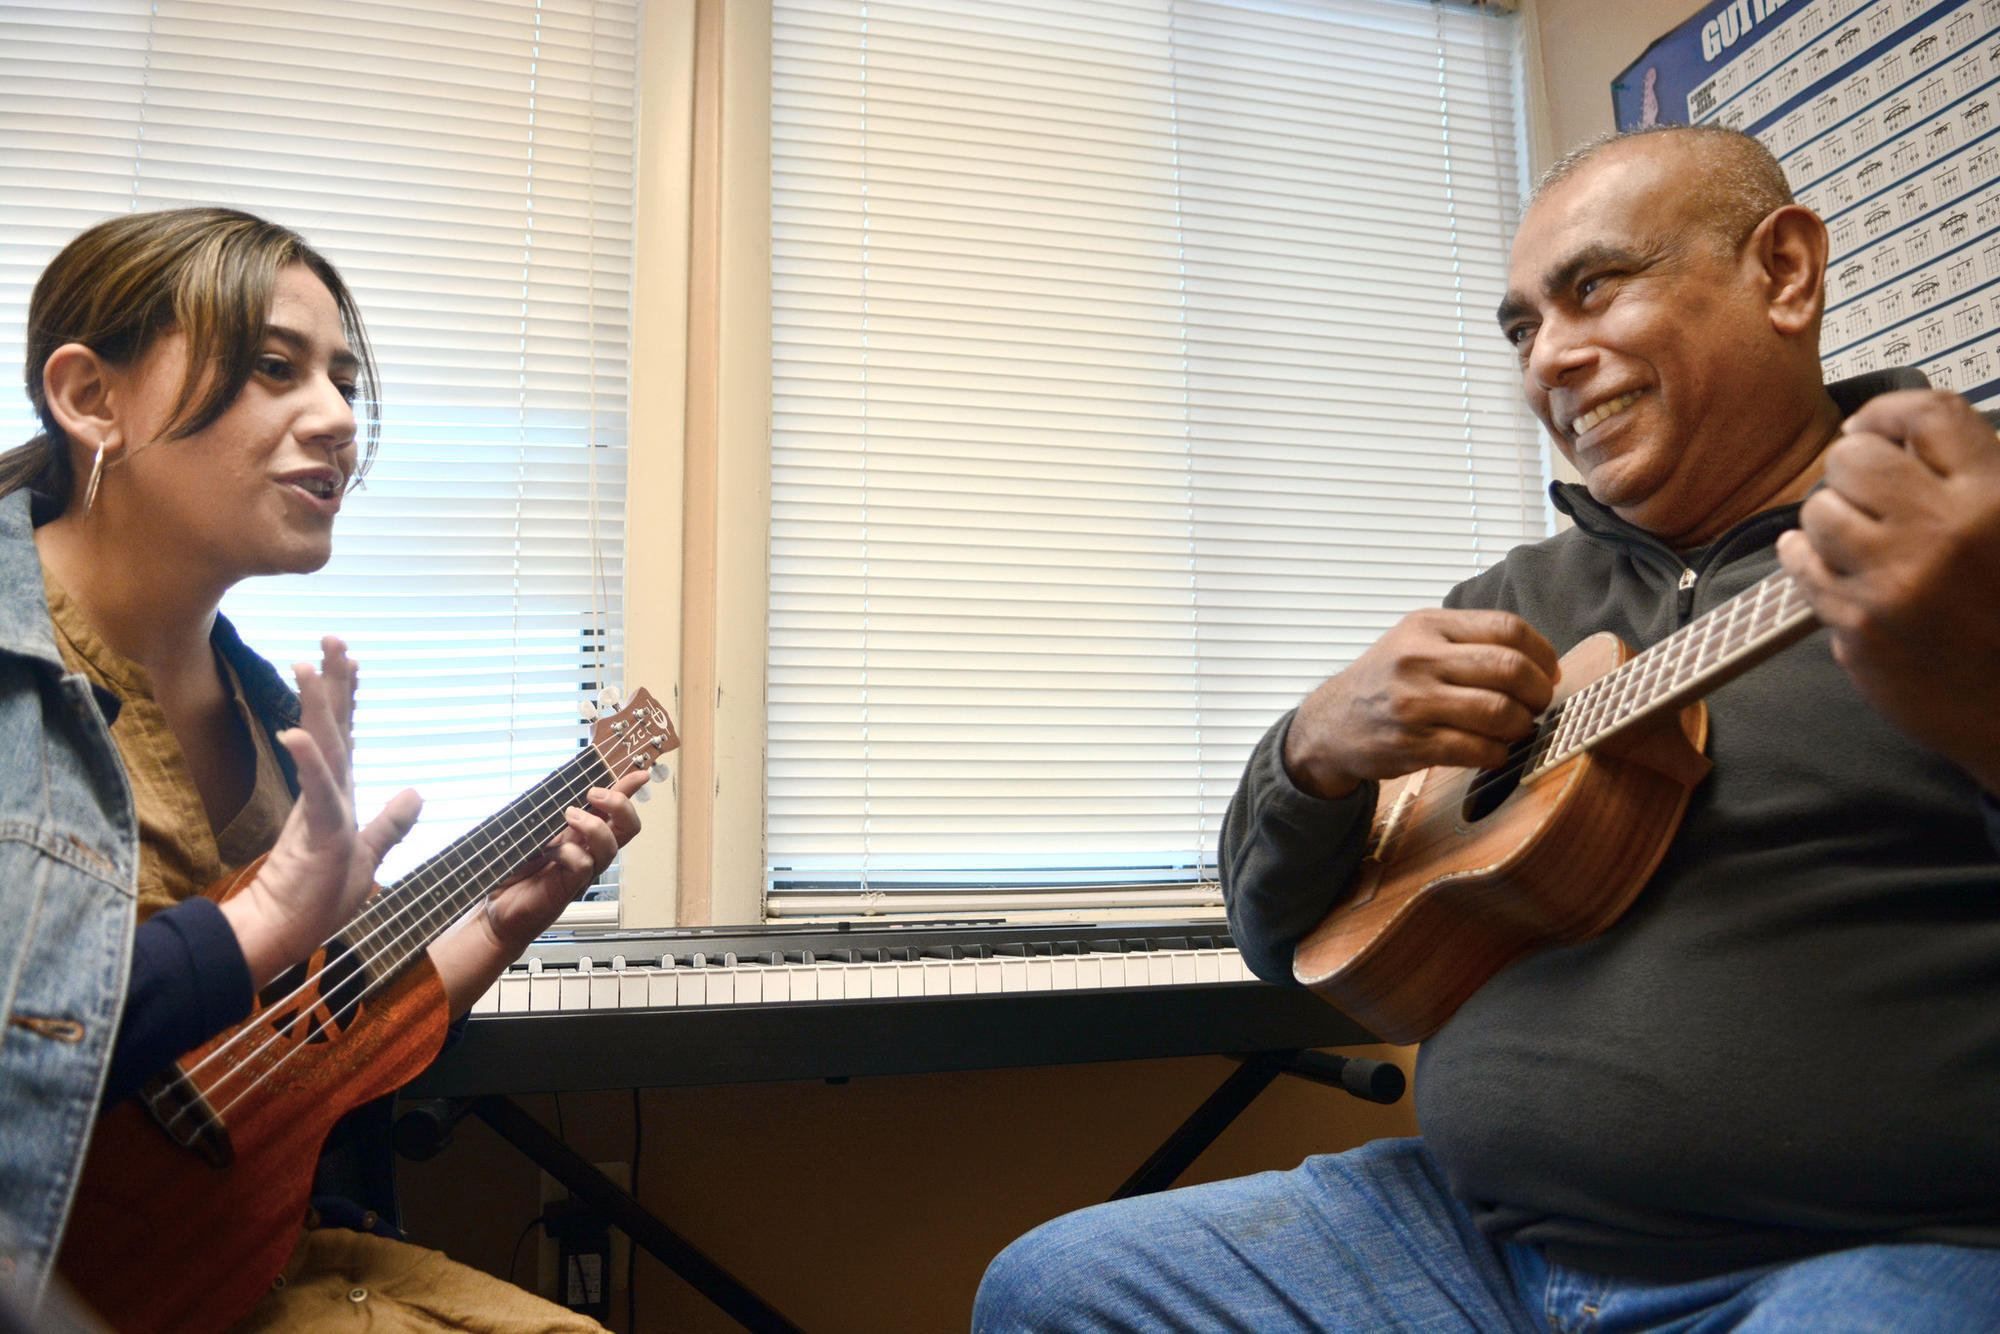 Warrior Music Foundation offers free life-altering music lessons for veterans